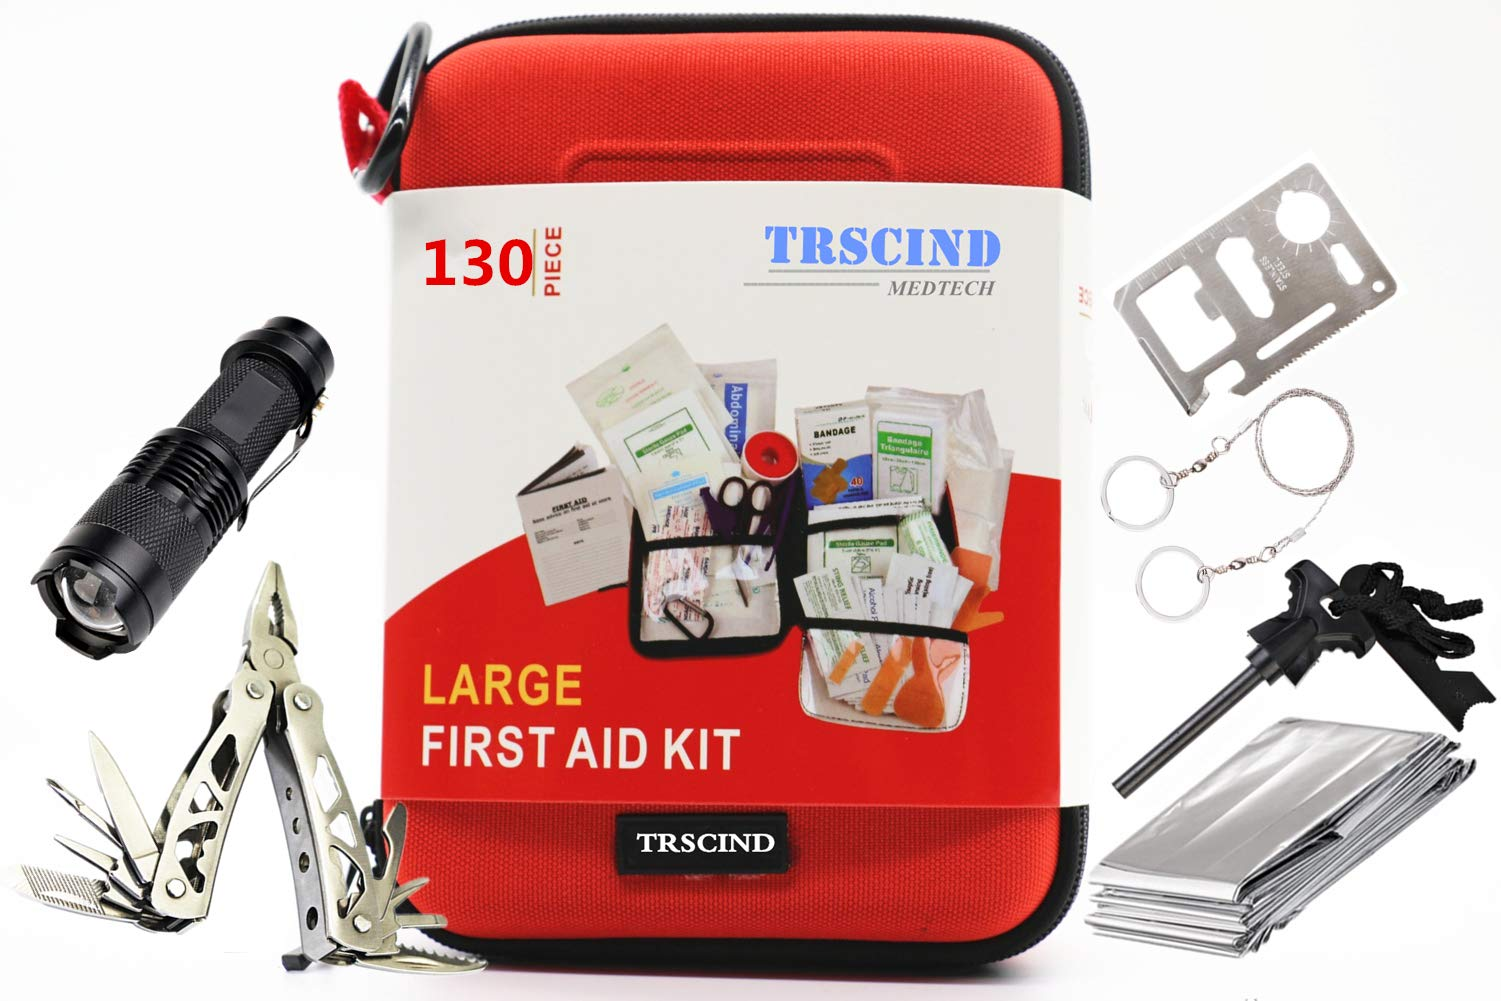 First Aid Kit Compact Survival Kit(2018 Upgraded) Emergency Kit Earthquake Survival kit Trauma Bag for Home Kids Camping Hiking Car Boat Business with Emergency Survival Gear by TRSCIND